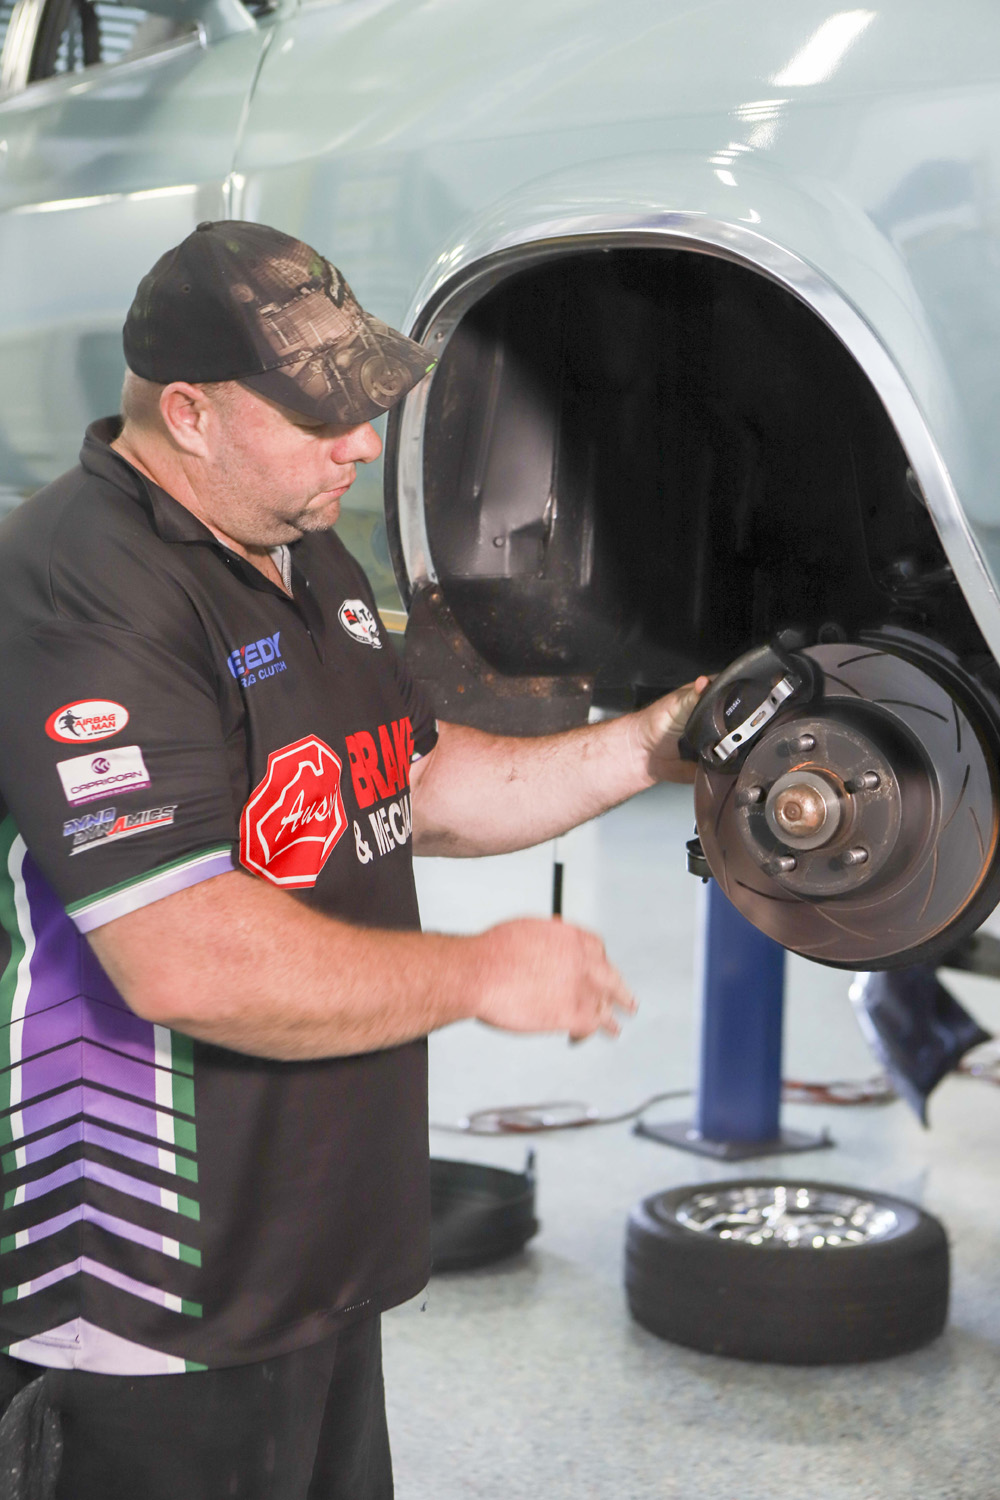 Aussie Brakes For The Best Brake Repair On Gold Coast Auto Mechanic Engine Service Then Chat To Us About A Custom Dyno Tune Your Vehicle Today